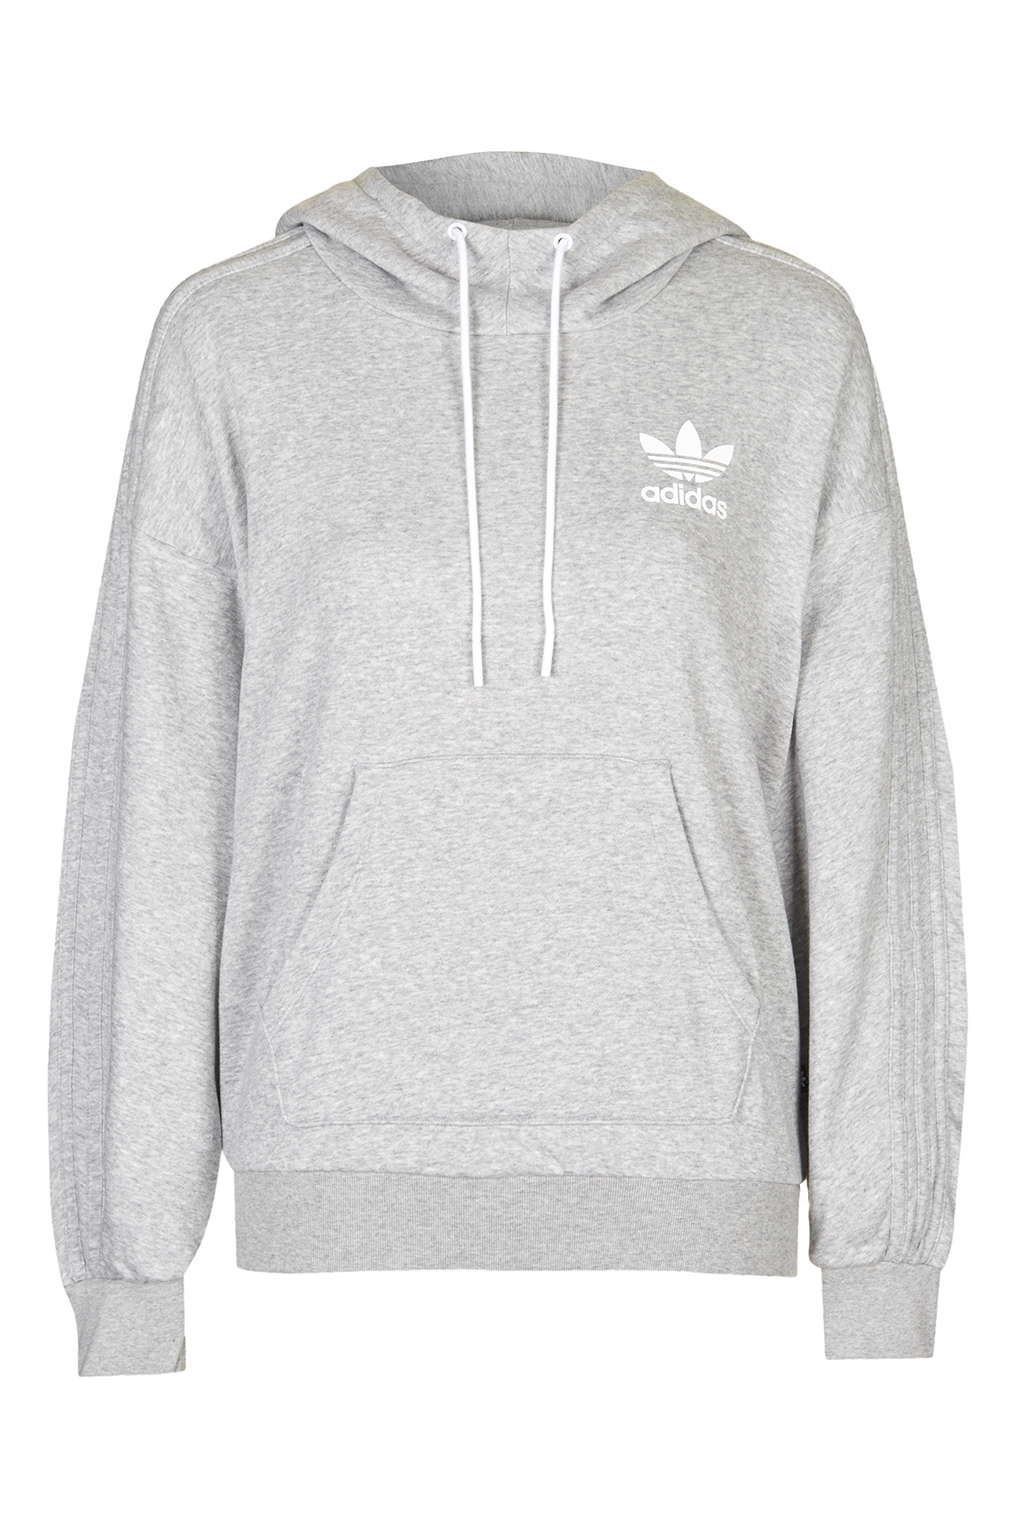 61902e24f52 French Bulldog Hoodie by Adidas Originals in 2019 | clothes | Sports ...